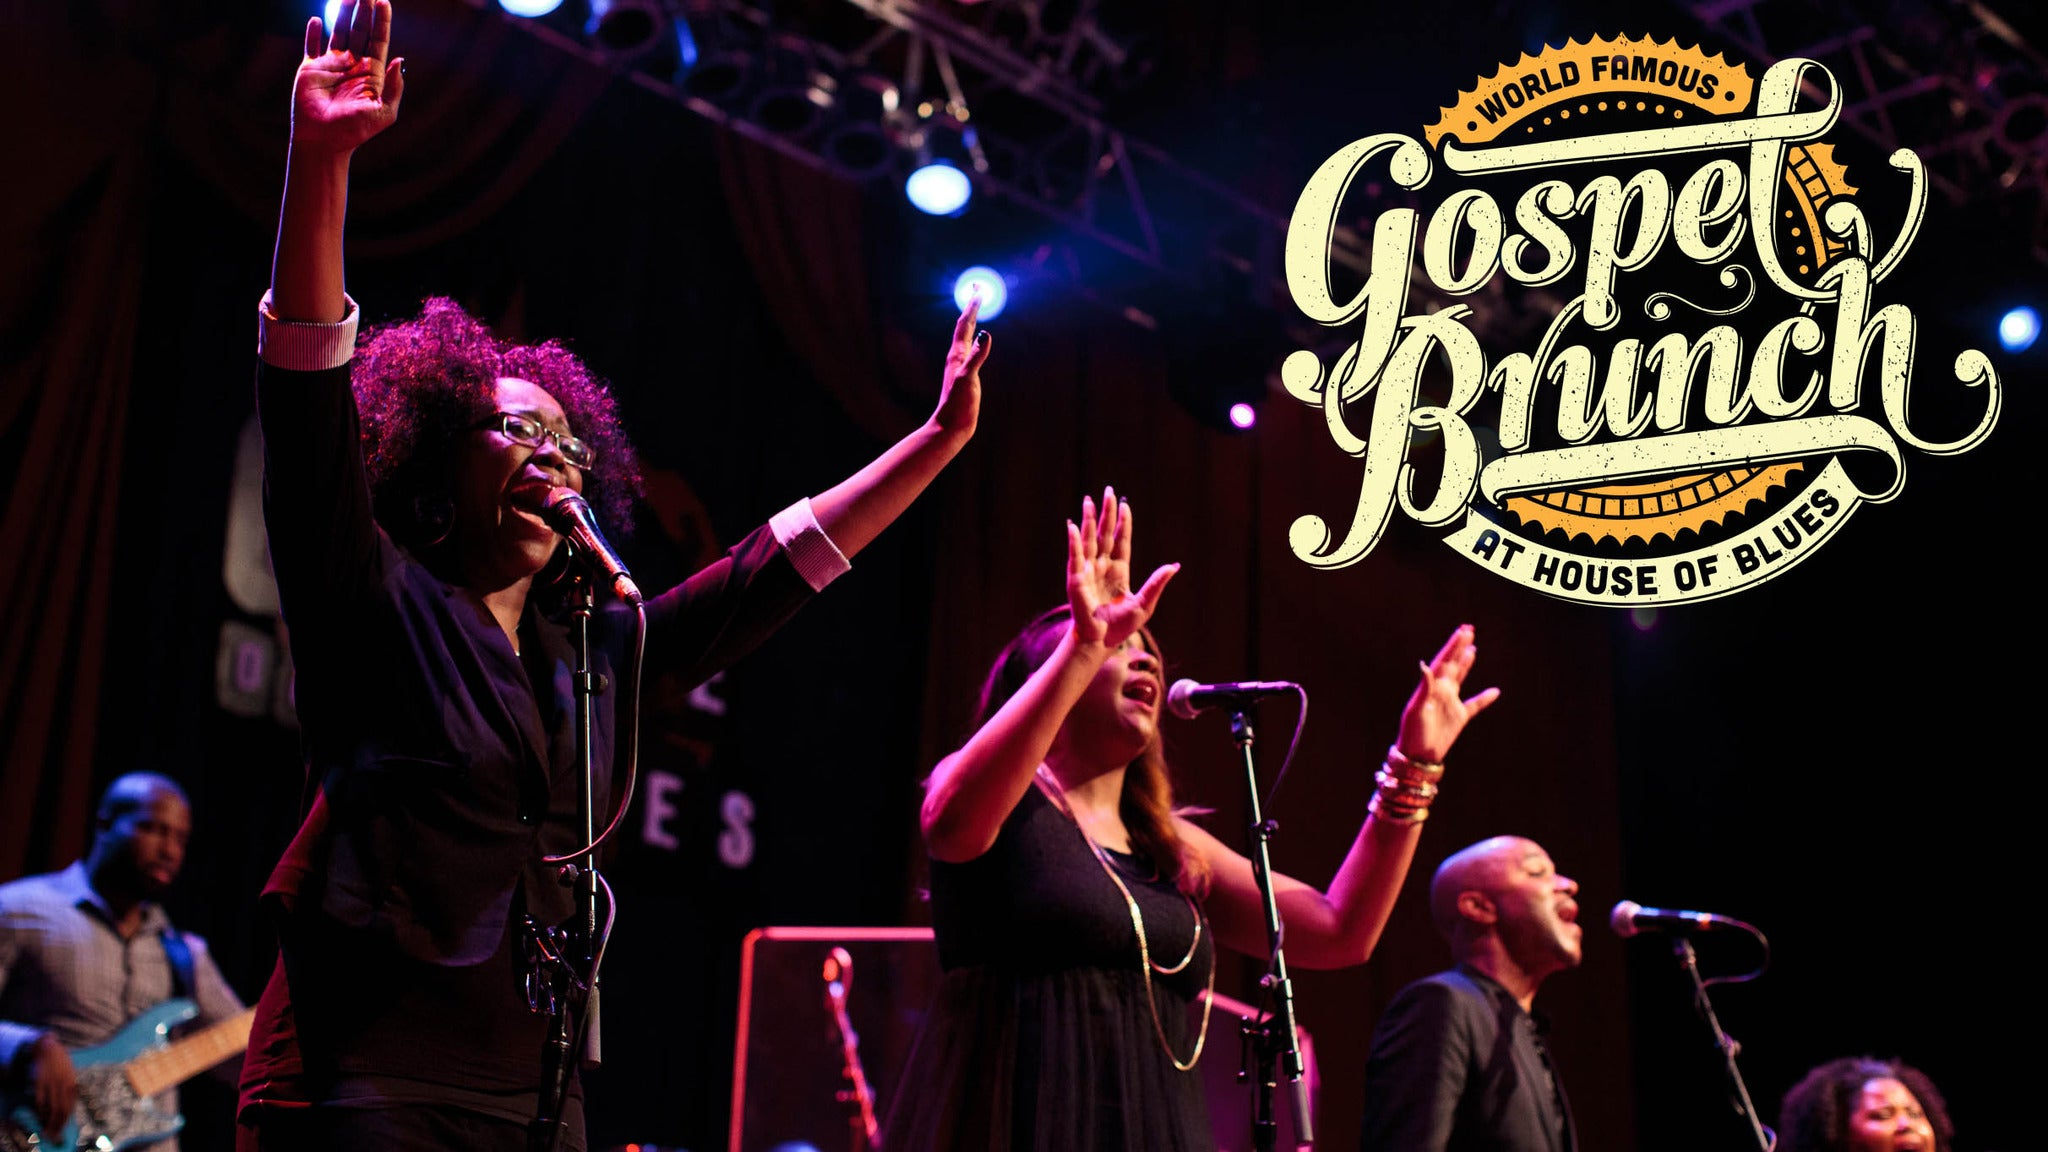 World Famous Gospel Brunch at House of Blues Houston